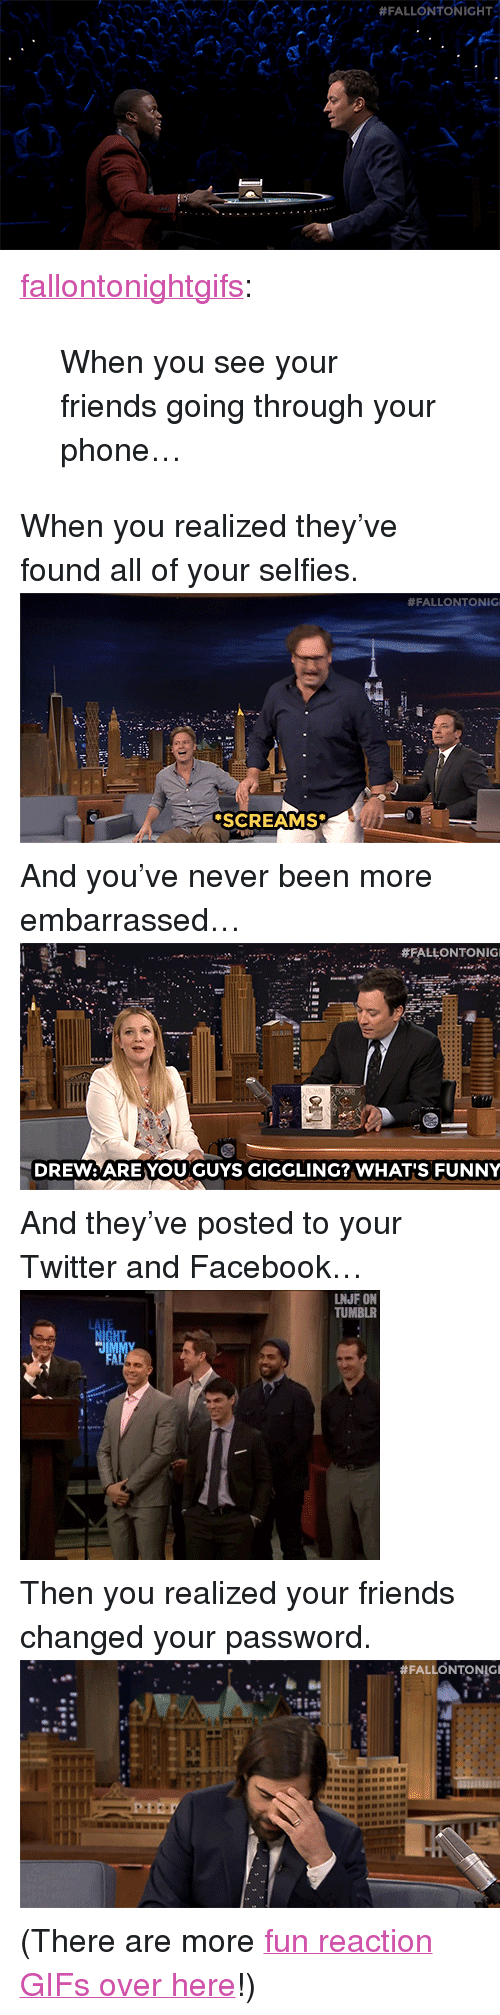 """reaction gifs: <p><a class=""""tumblr_blog"""" href=""""http://fallontonightgifs.tumblr.com/post/108578644882/when-you-see-your-friends-going-through-your"""" target=""""_blank"""">fallontonightgifs</a>:</p> <blockquote> <p>When you see your friends going through your phone…</p> </blockquote> <p>When you realized they&rsquo;ve found all of your selfies.<img alt="""""""" src=""""https://78.media.tumblr.com/69faf1b399605b91836b24bc10fa18ba/tumblr_nia6pijyh91tv4k5po1_500.gif""""/></p> <p>And you&rsquo;ve never been more embarrassed&hellip;<img alt="""""""" src=""""https://78.media.tumblr.com/8e204270f1134cb36b7ae797816ec74f/tumblr_nexq41elfX1tv4k5po1_500.gif""""/></p> <p>And they&rsquo;ve posted to your Twitter and Facebook&hellip;<img alt="""""""" src=""""https://78.media.tumblr.com/83c125f3769c9b9163bf051b75480b20/tumblr_na96ztyLLY1tv4k5po1_400.gif""""/></p> <p>Then you realized your friends changed your password.<img alt="""""""" src=""""https://78.media.tumblr.com/df5c96b7fe56debfd1fd4ca8006ccbd6/tumblr_ndlaq56f161tv4k5po1_500.gif""""/></p> <p>(There are more <a href=""""http://fallontonightgifs.tumblr.com"""" target=""""_blank"""">fun reaction GIFs over here</a>!)</p>"""